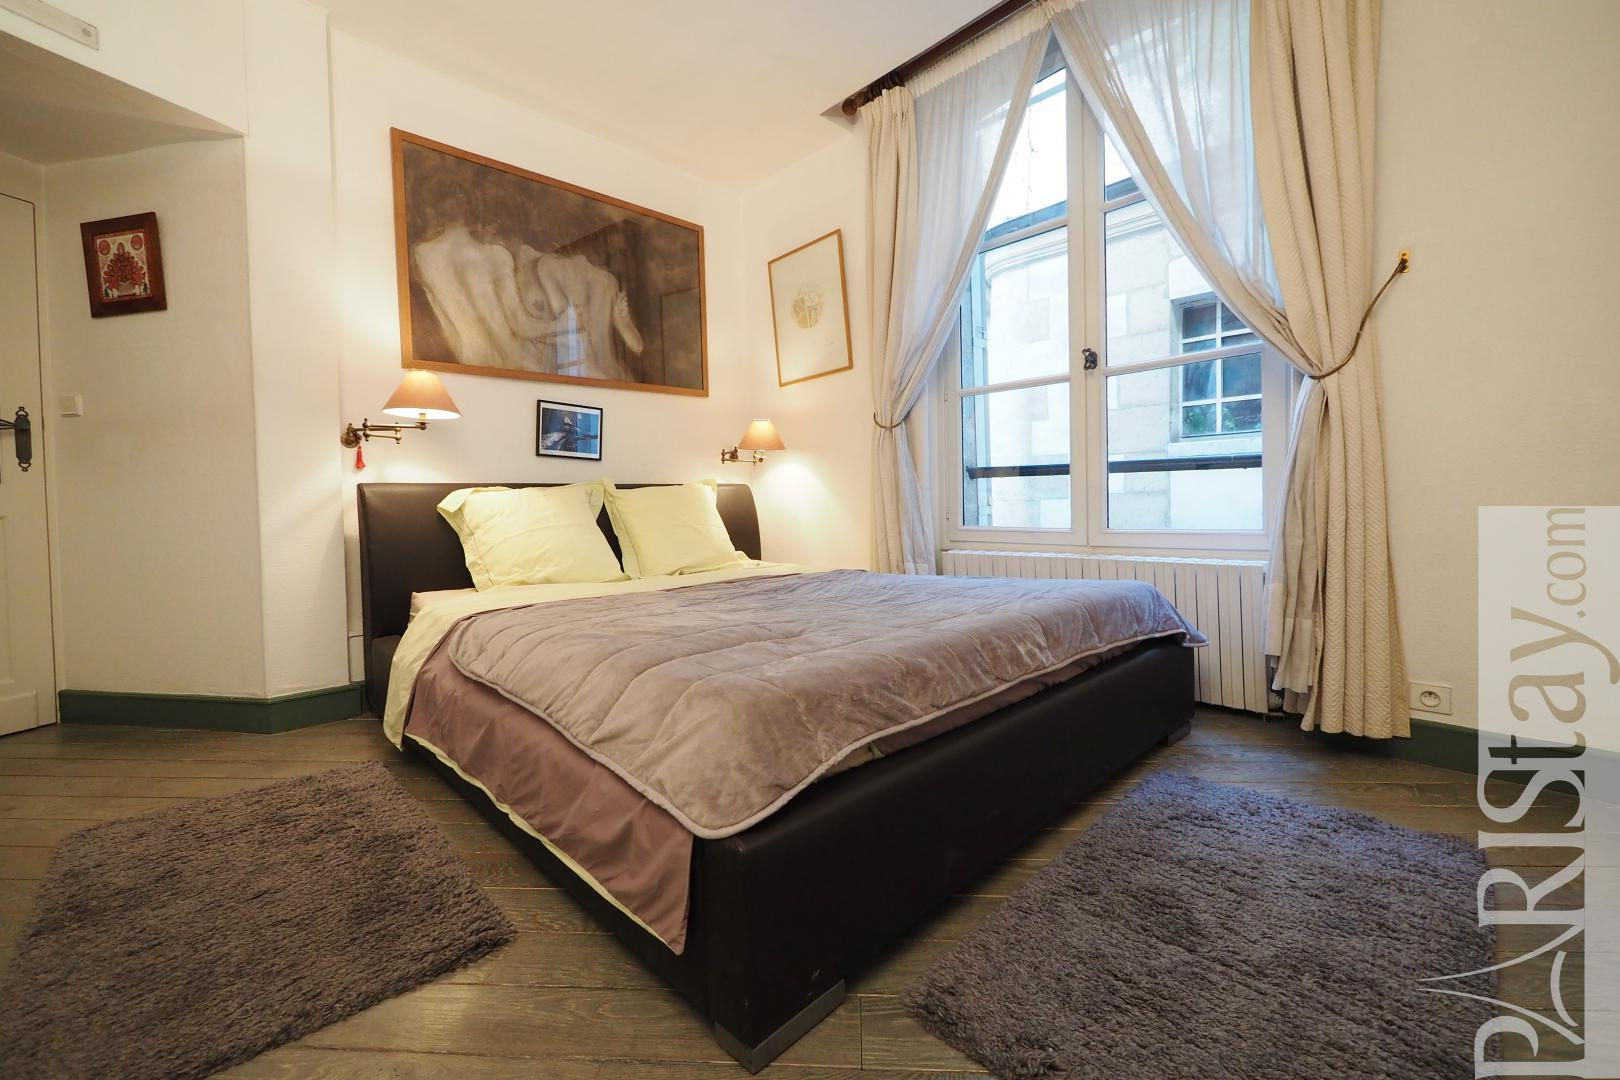 Location appartement meuble paris saint germain des pres - Chambre a coucher paris ...